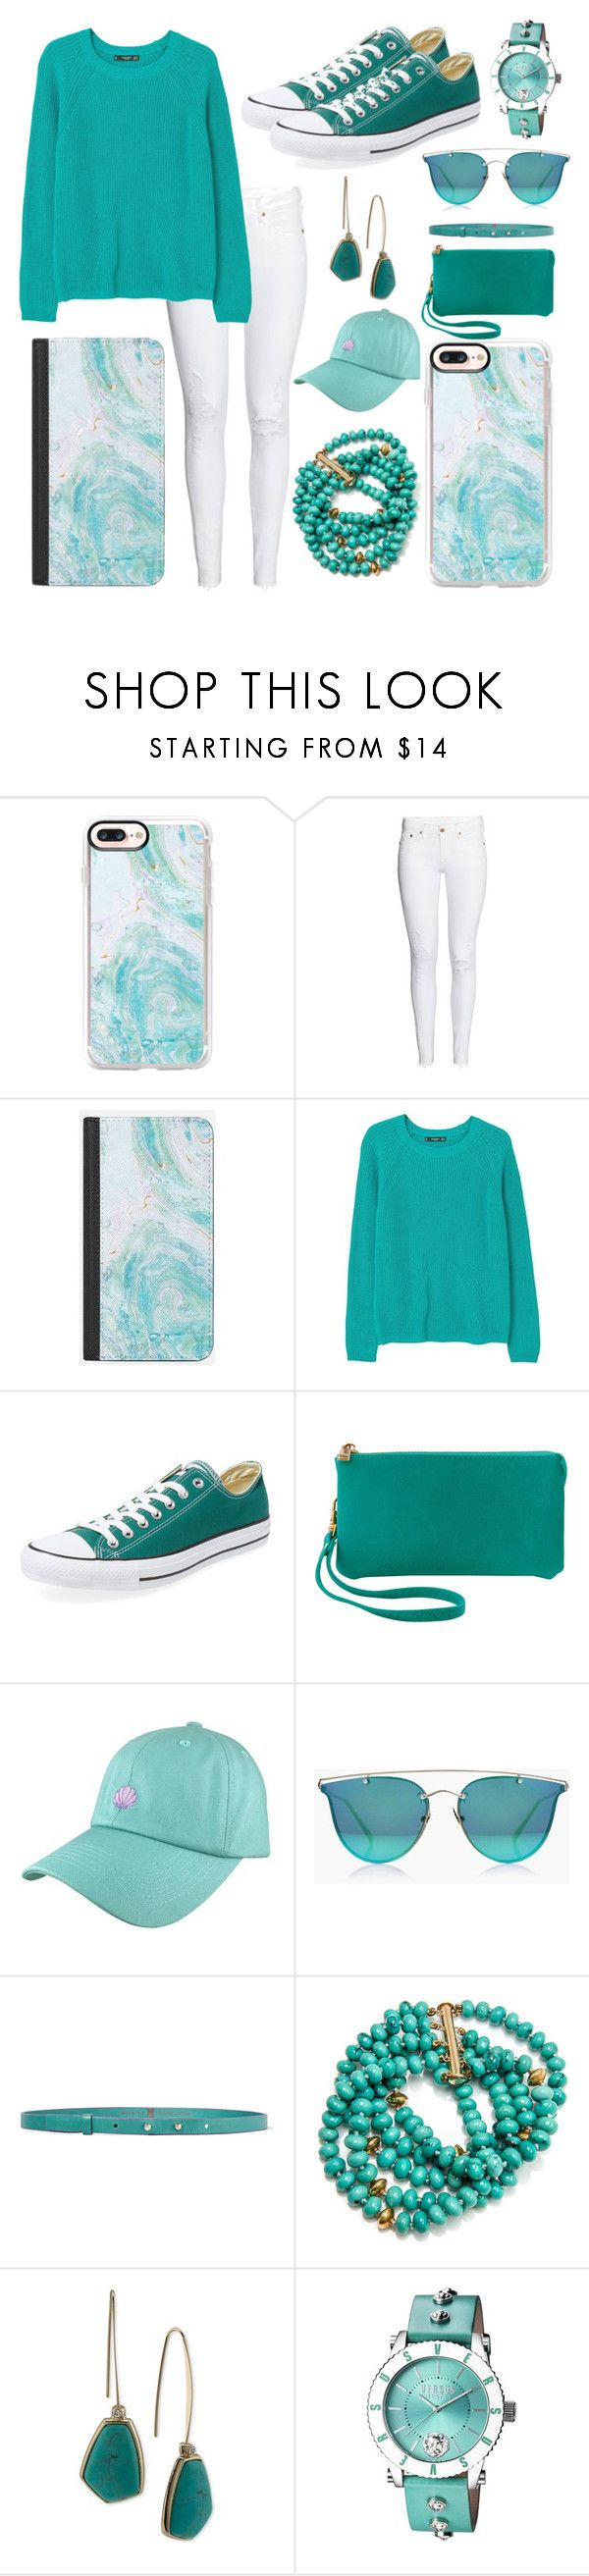 """turquoise/teal"" by gatelyhawkins ❤ liked on Polyvore featuring Casetify, MANGO, Converse, Humble Chic, Boohoo, M Missoni, Lauren Ralph Lauren and Versus"